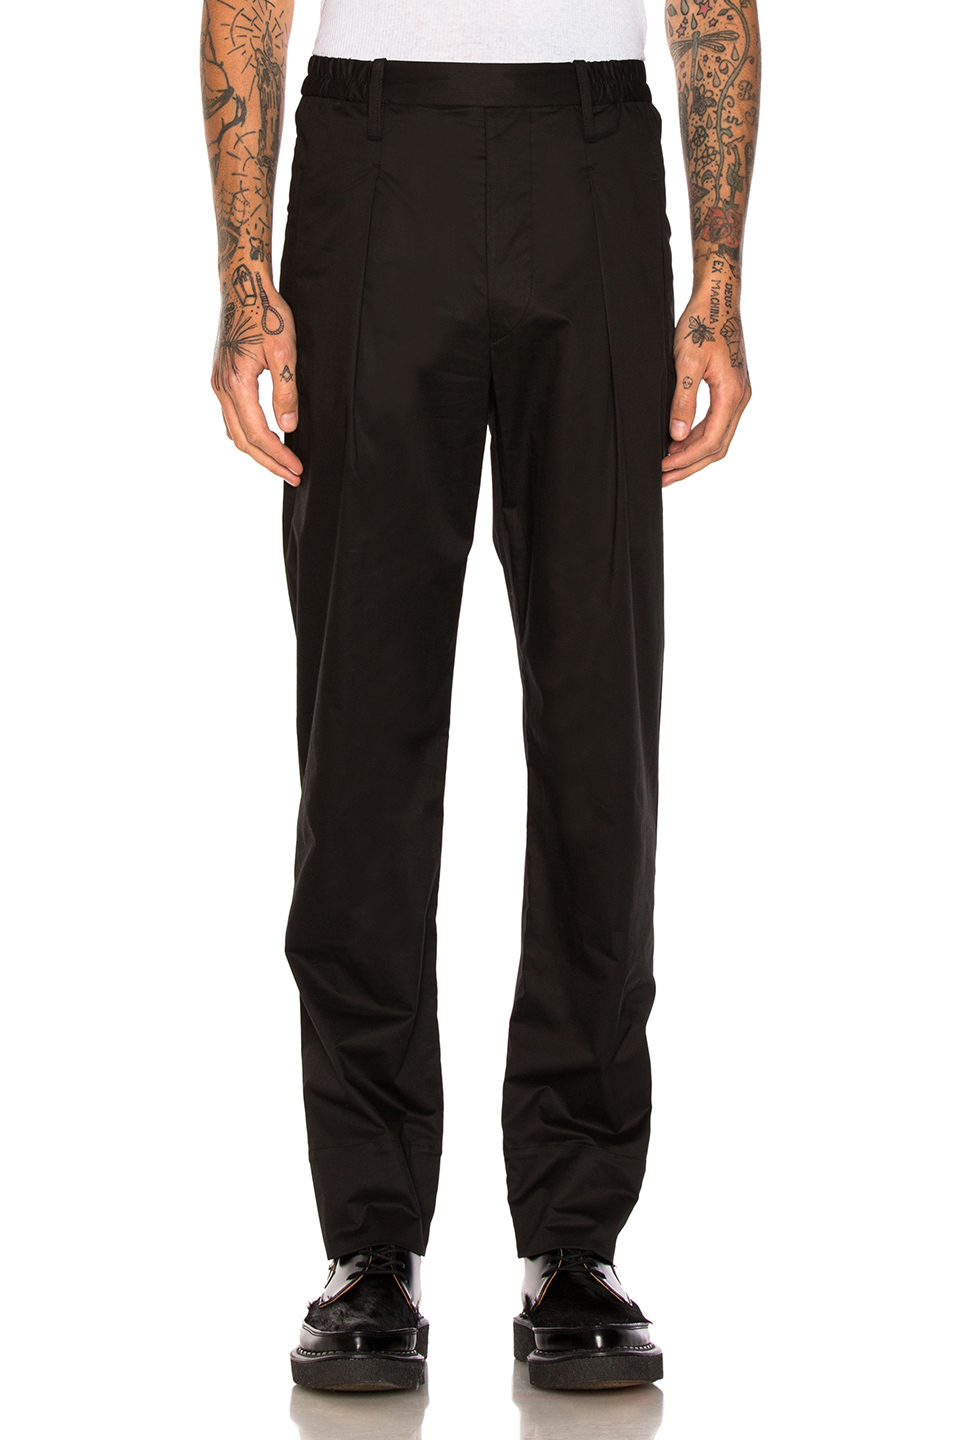 Lemaire Elasticated Pants in Black